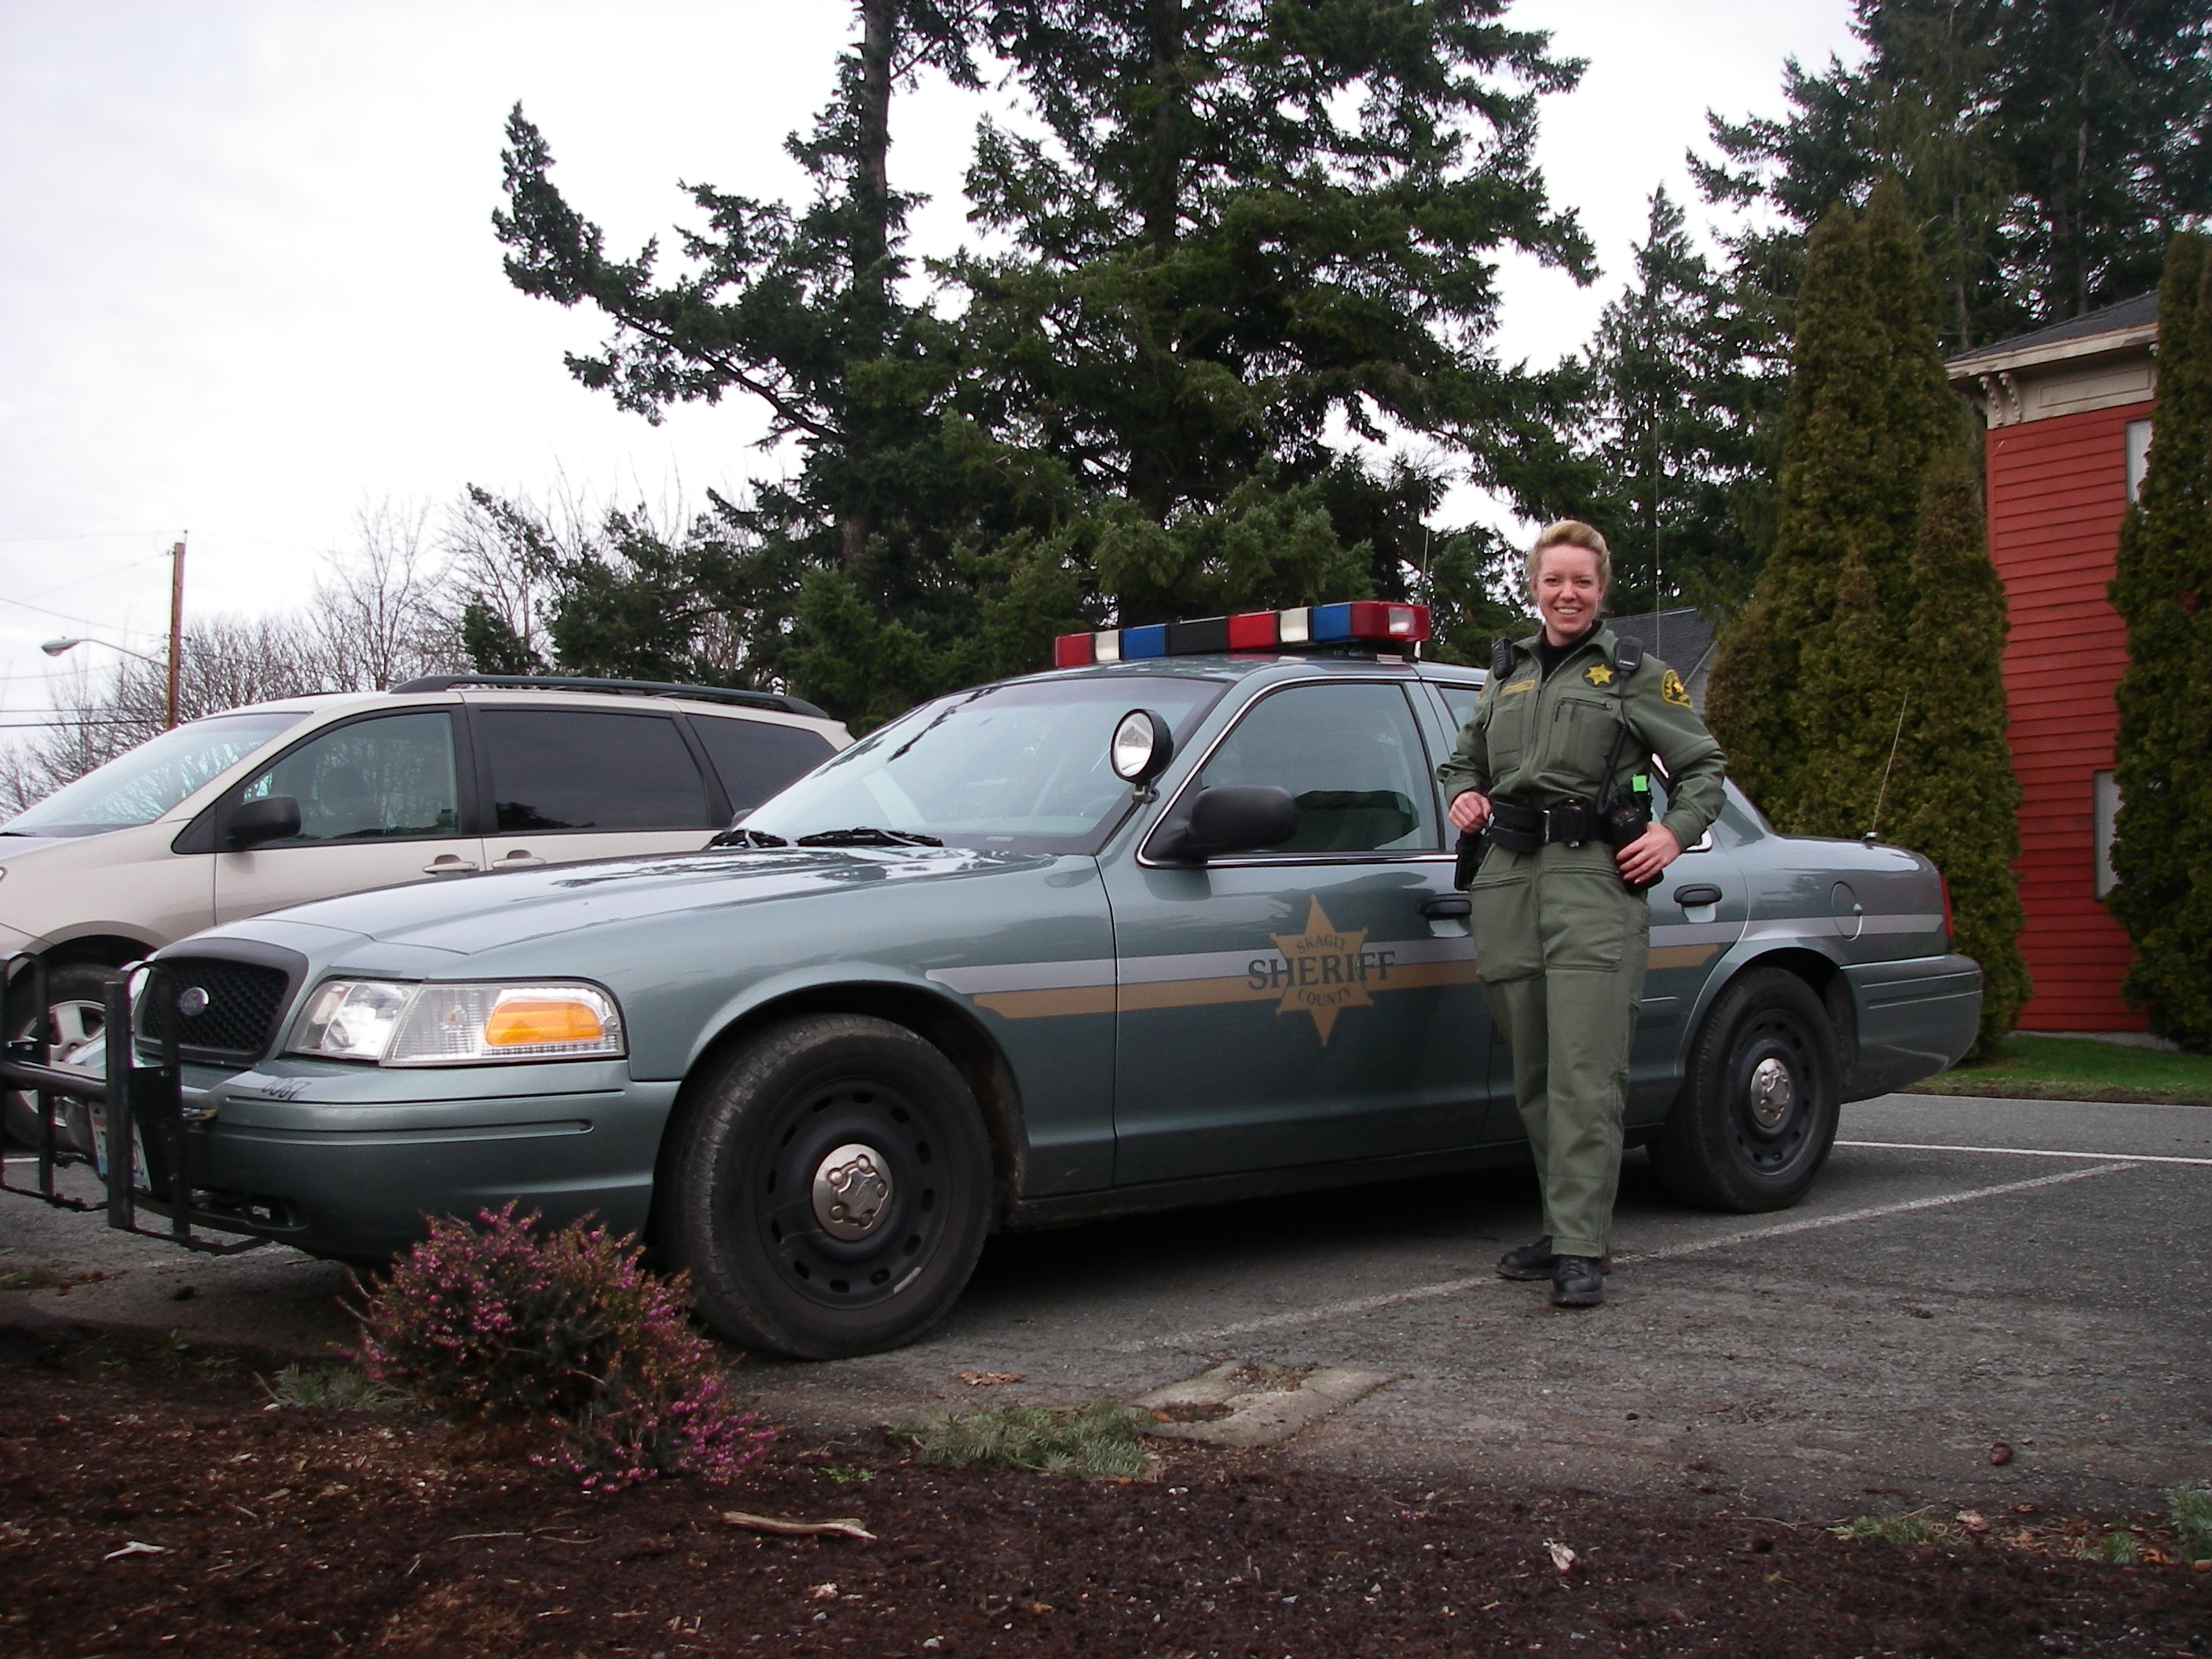 Deputy Sheriff Anne Marie Jackson | Skagit County Sheriff's Office, Washington